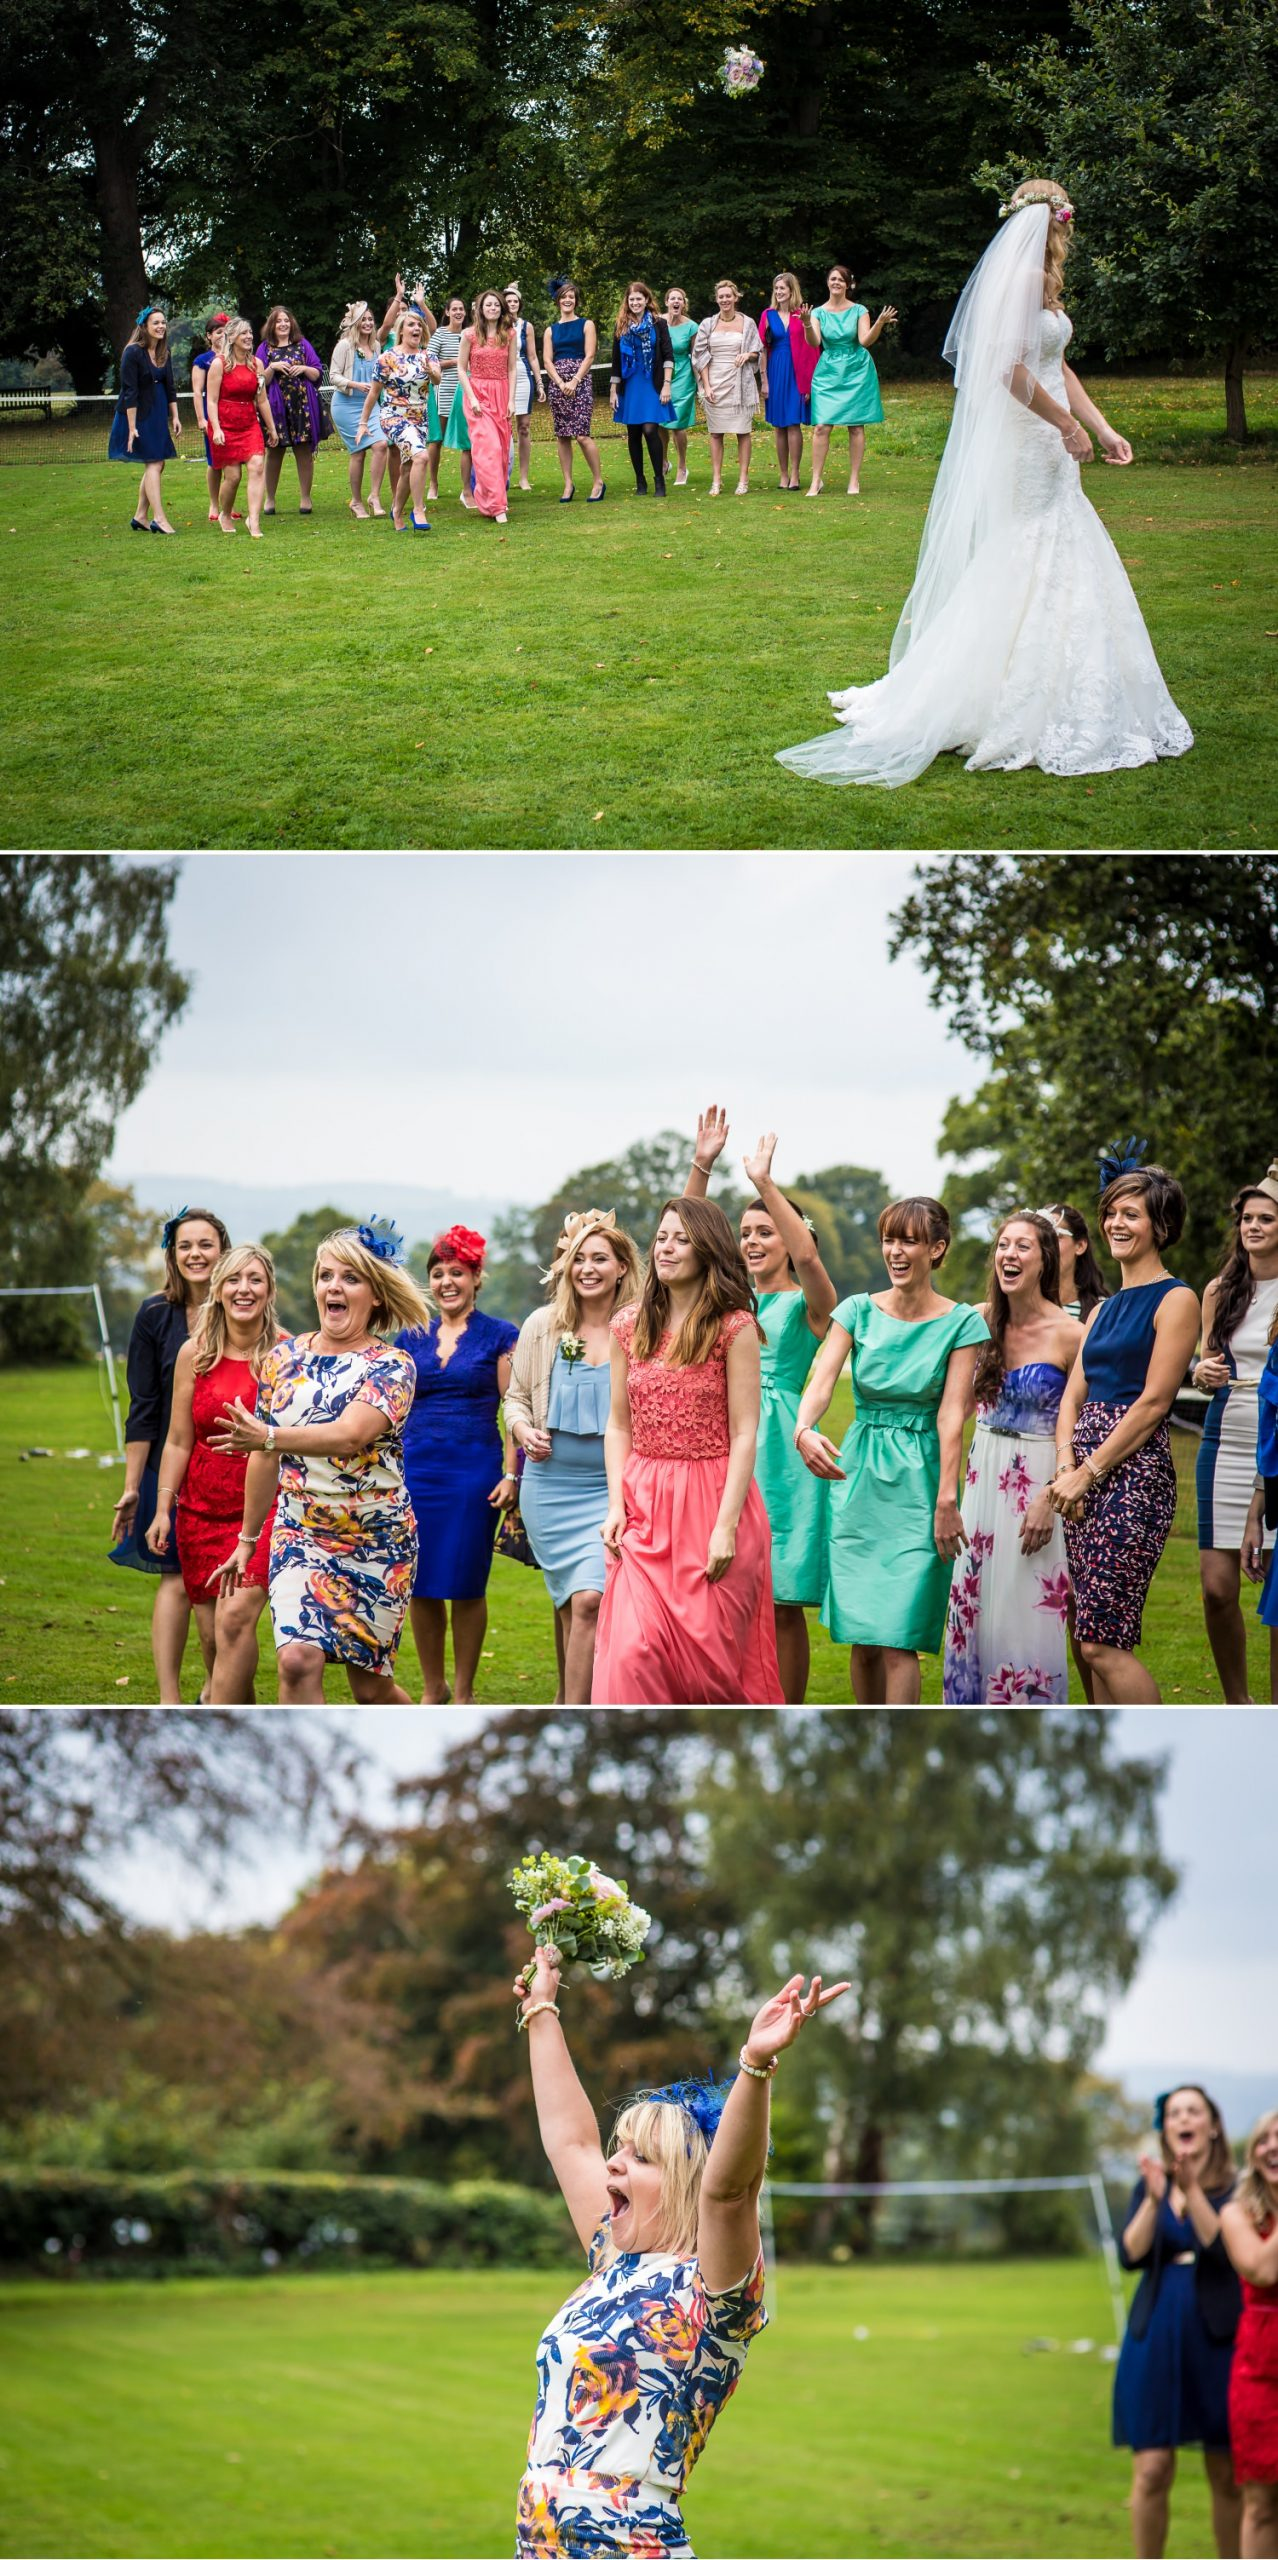 Wedding photography of the bouquet toss at Pentre Mawr Country House, North Wales